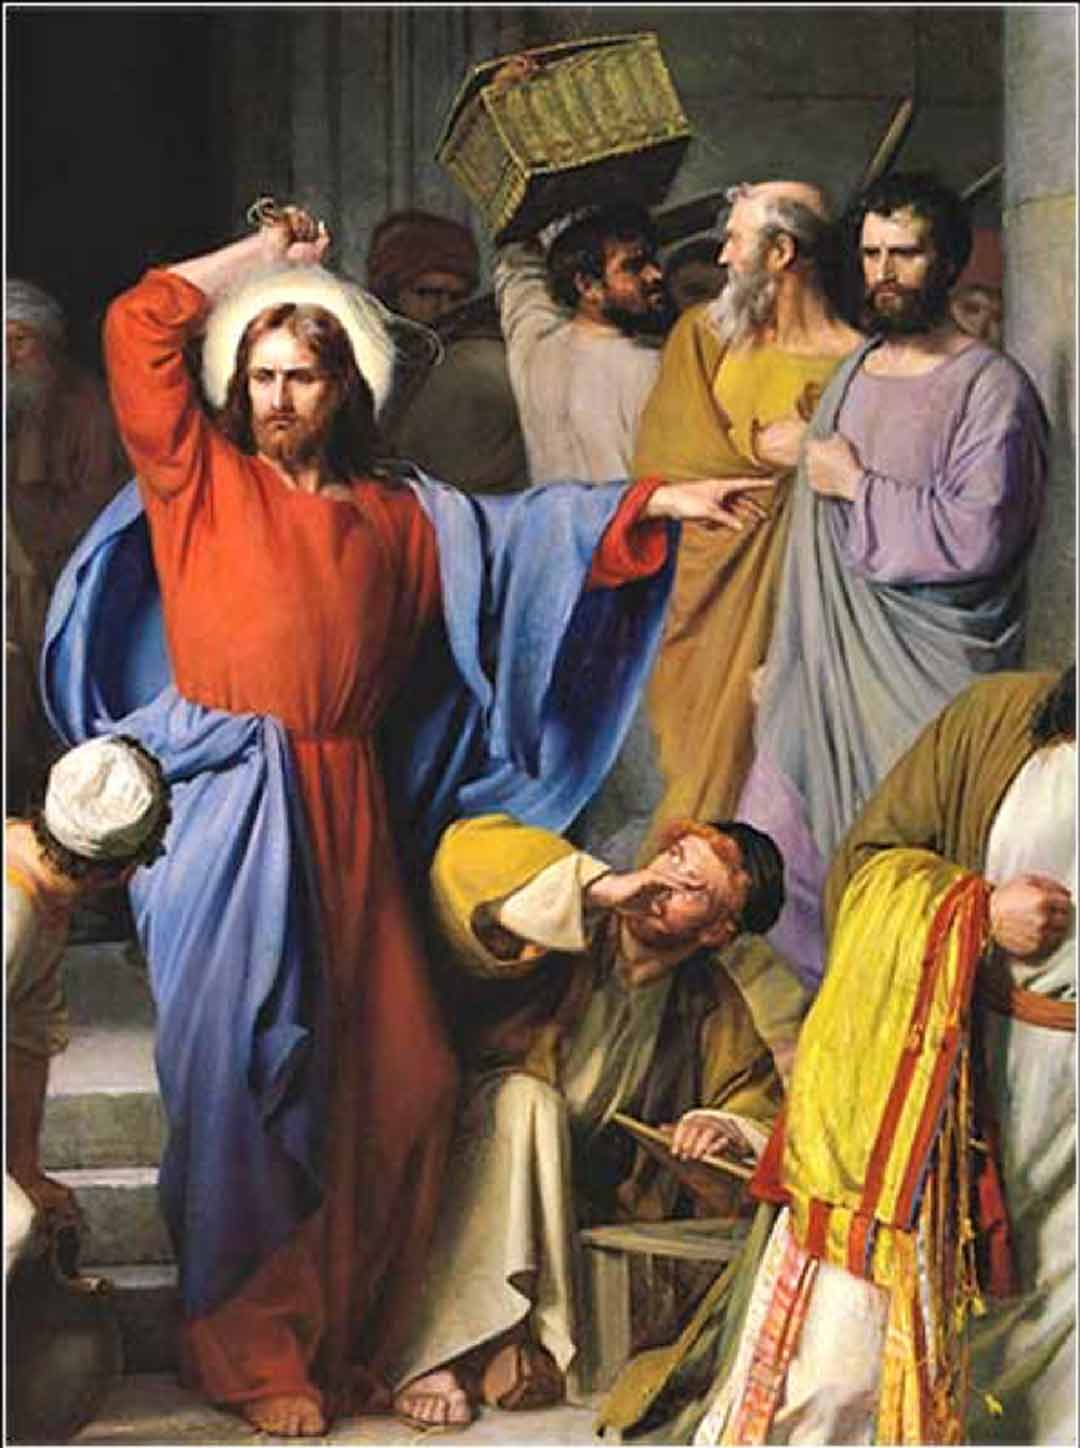 Painting: Jesus Cleansing the Temple by Carl Bloch, 1874